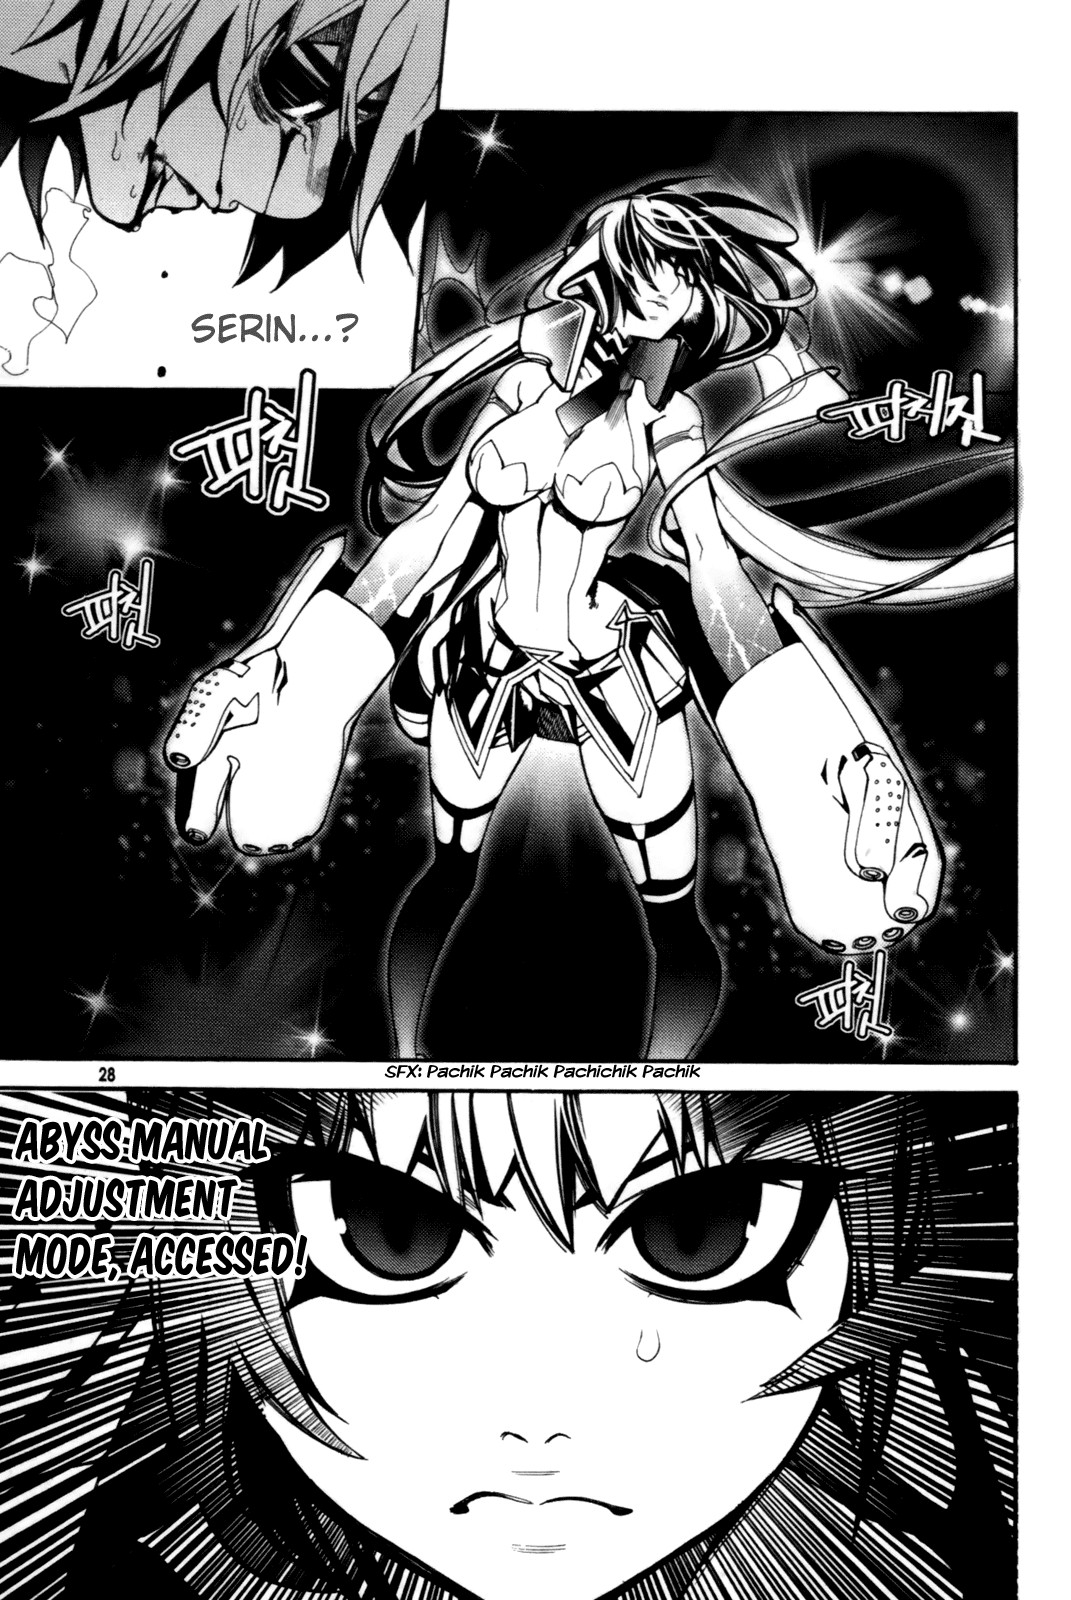 Read Cavalier Of The Abyss Chapter 40